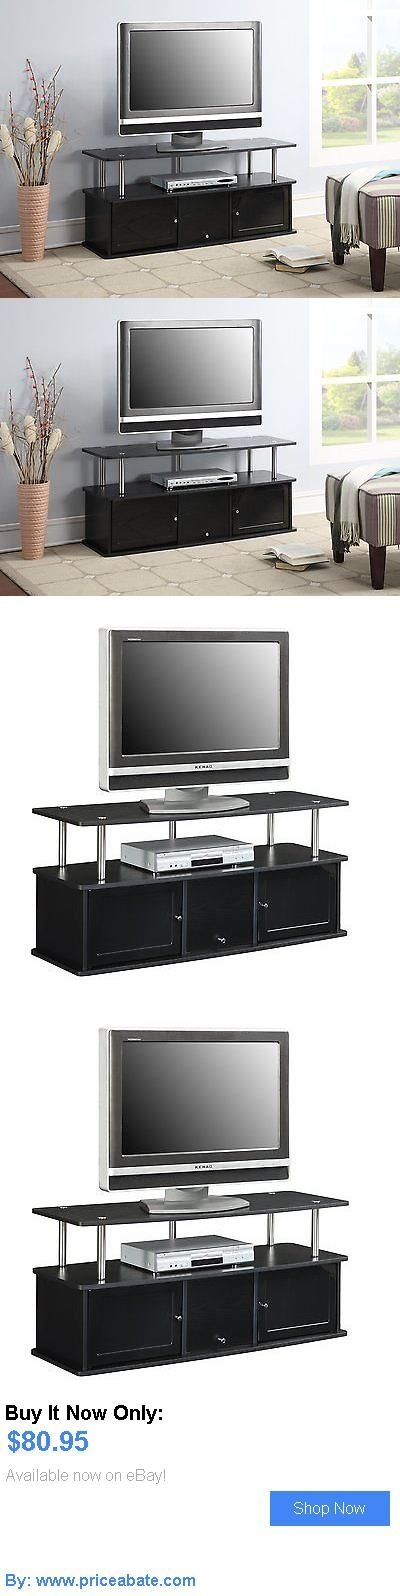 Magnificent New TV Stands For 50 Inch TVs Within Best 25 50 Inch Tvs Ideas Only On Pinterest Electric Wall (Image 33 of 50)